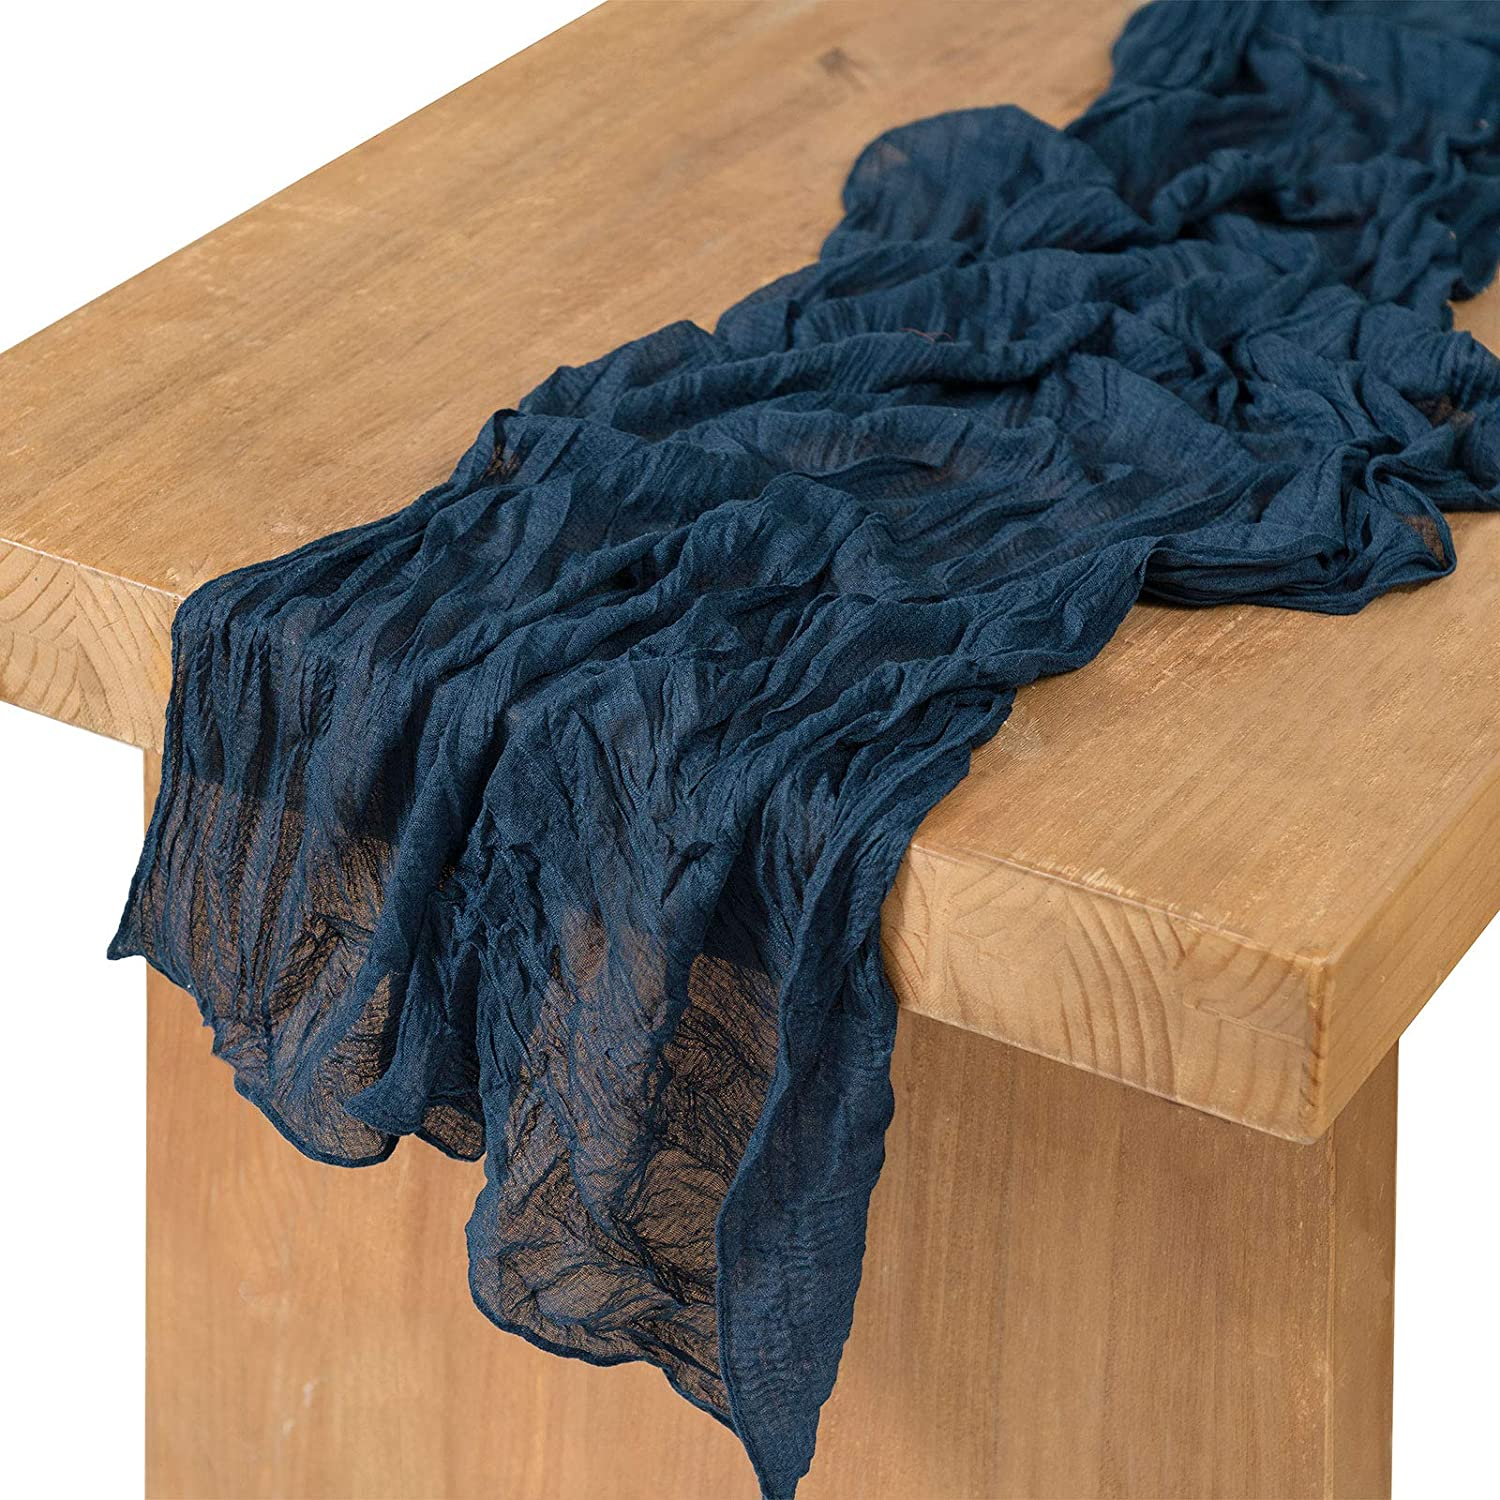 """Ling's moment 10ft x 35"""" Wide Navy Blue Gauze Semi-Sheer Table Runner Cheesecloth Tablecloth for Wedding Reception Bridal Shower Birthdap Party Table Centerpieces Decor"""